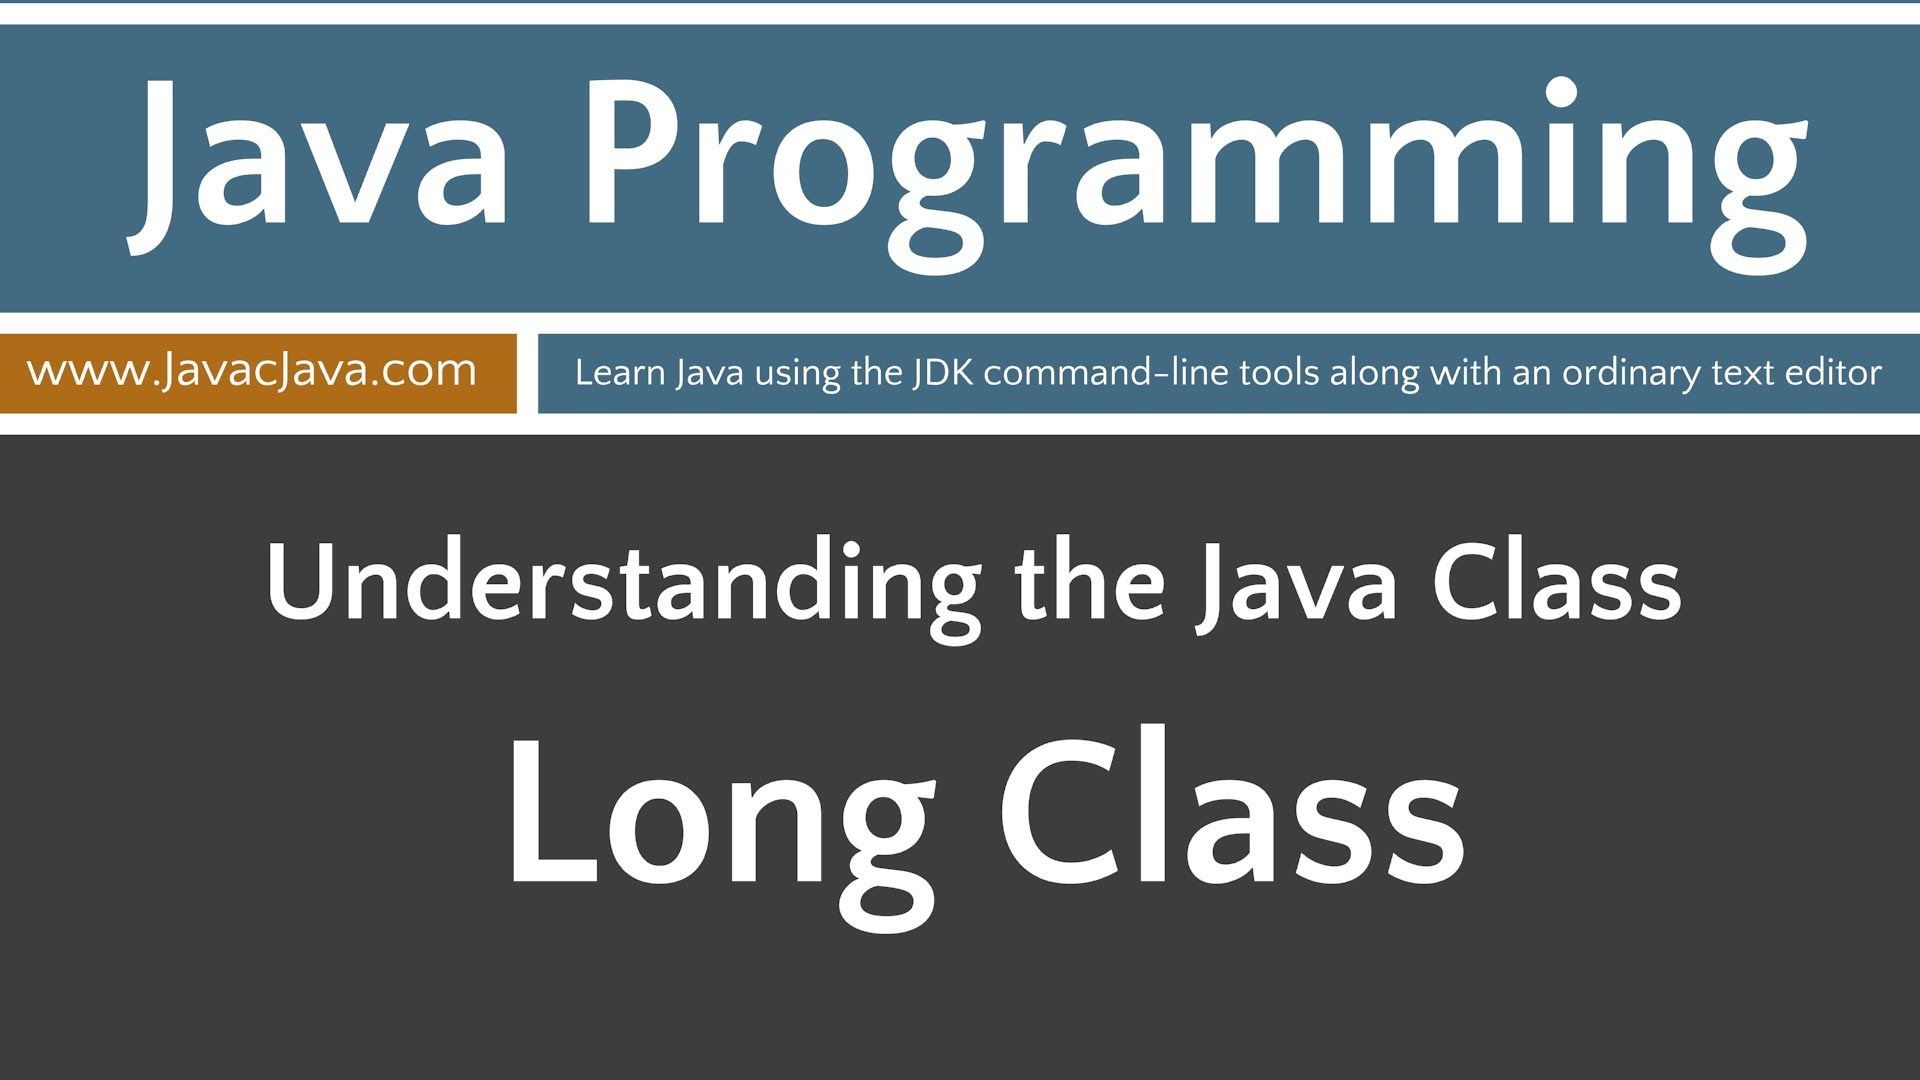 Learn java programming long class tutorial with images